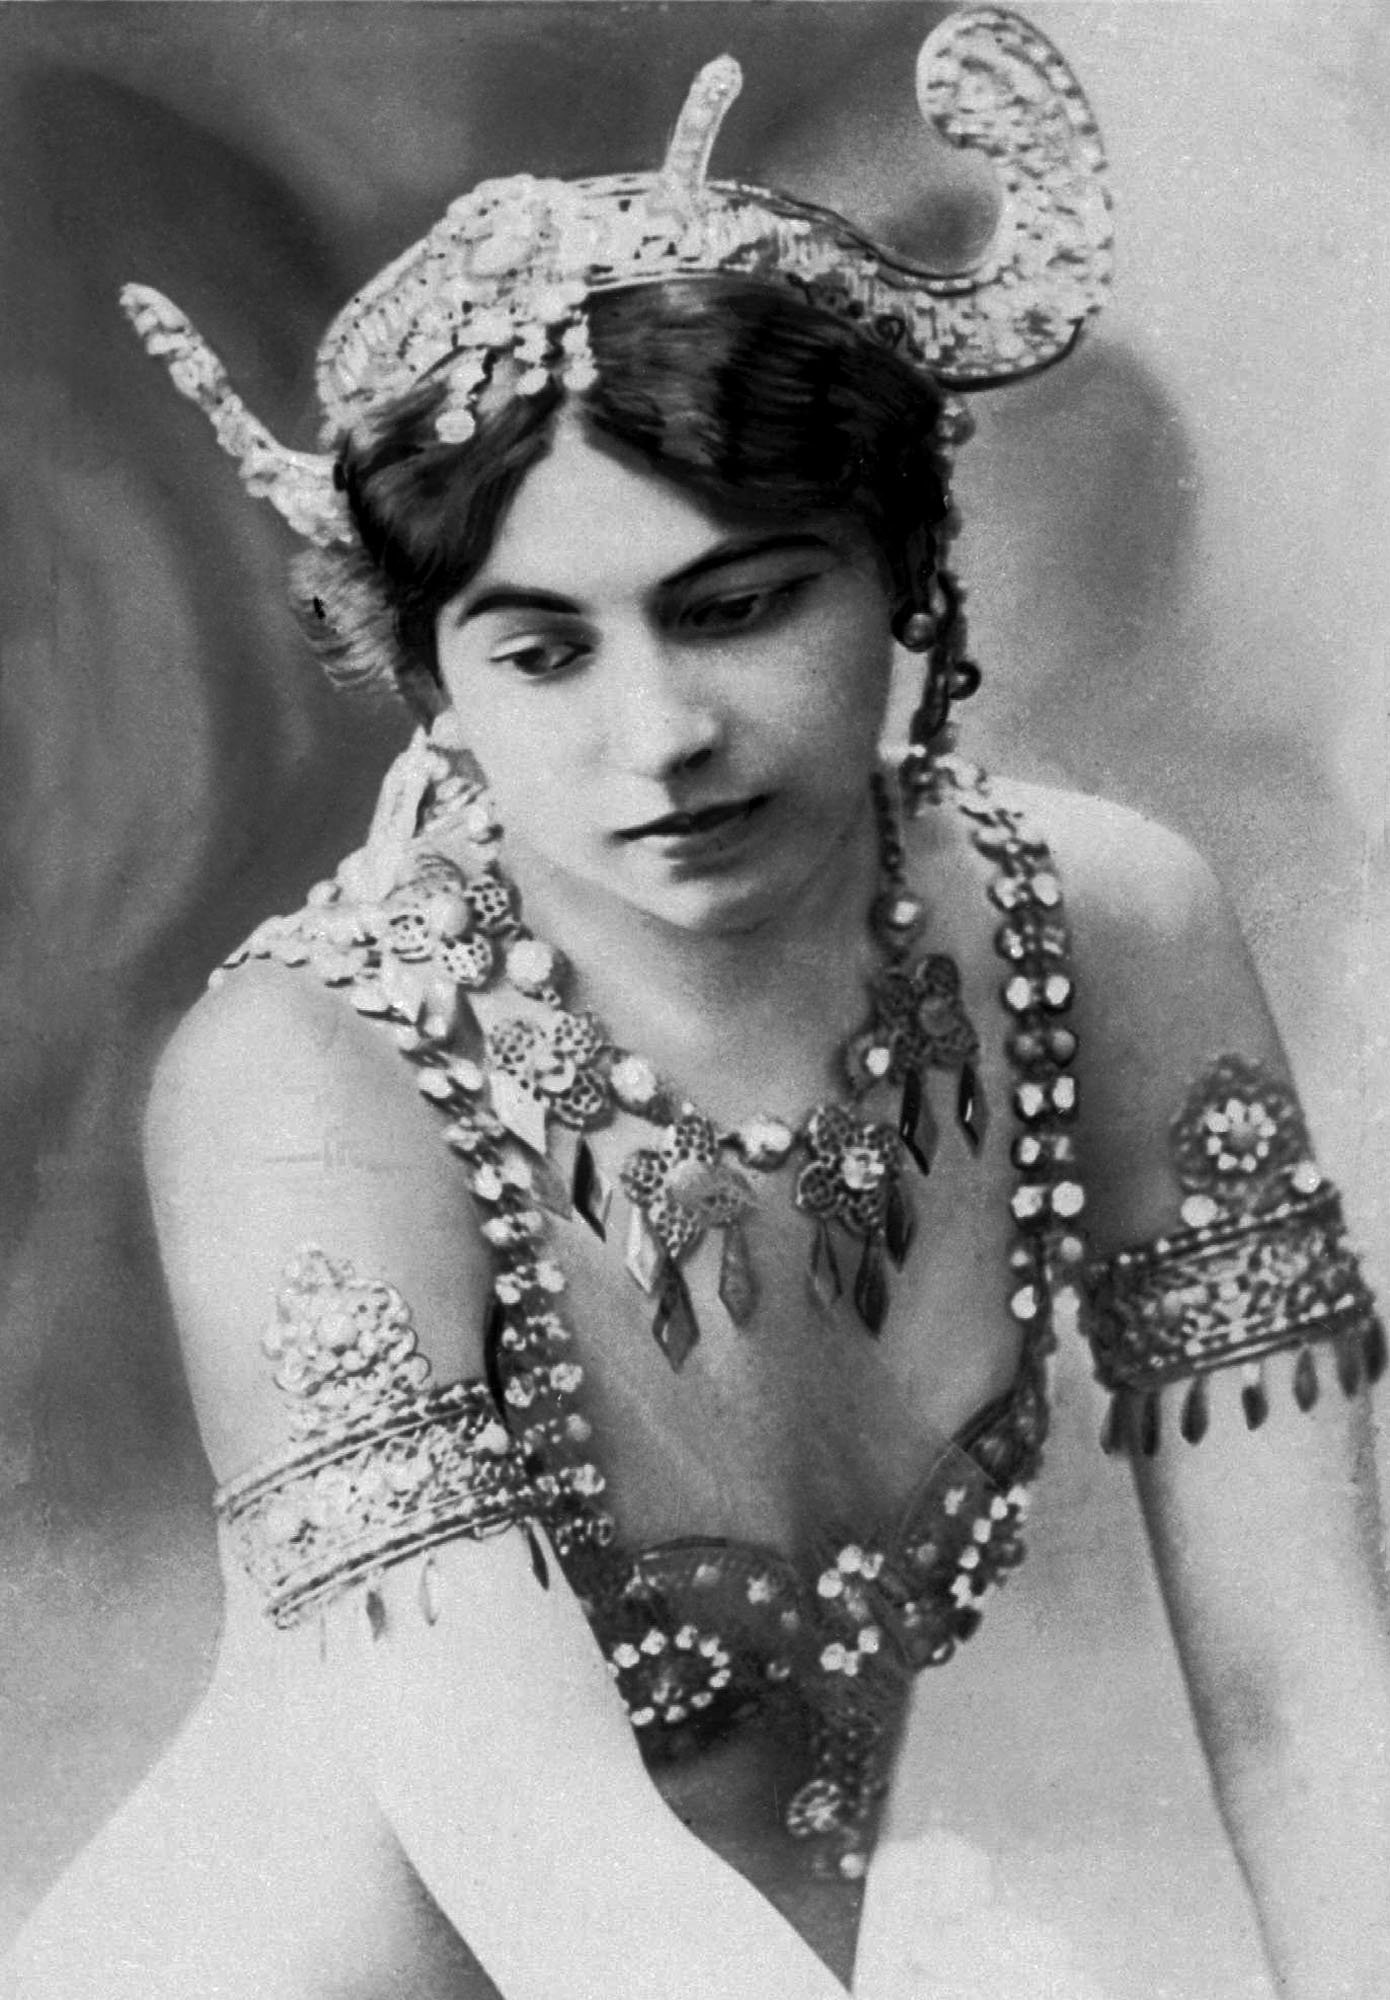 Eye Of The Day remembers mysterious dancer Mata Hari, questionably shot by the French for spying during WW1